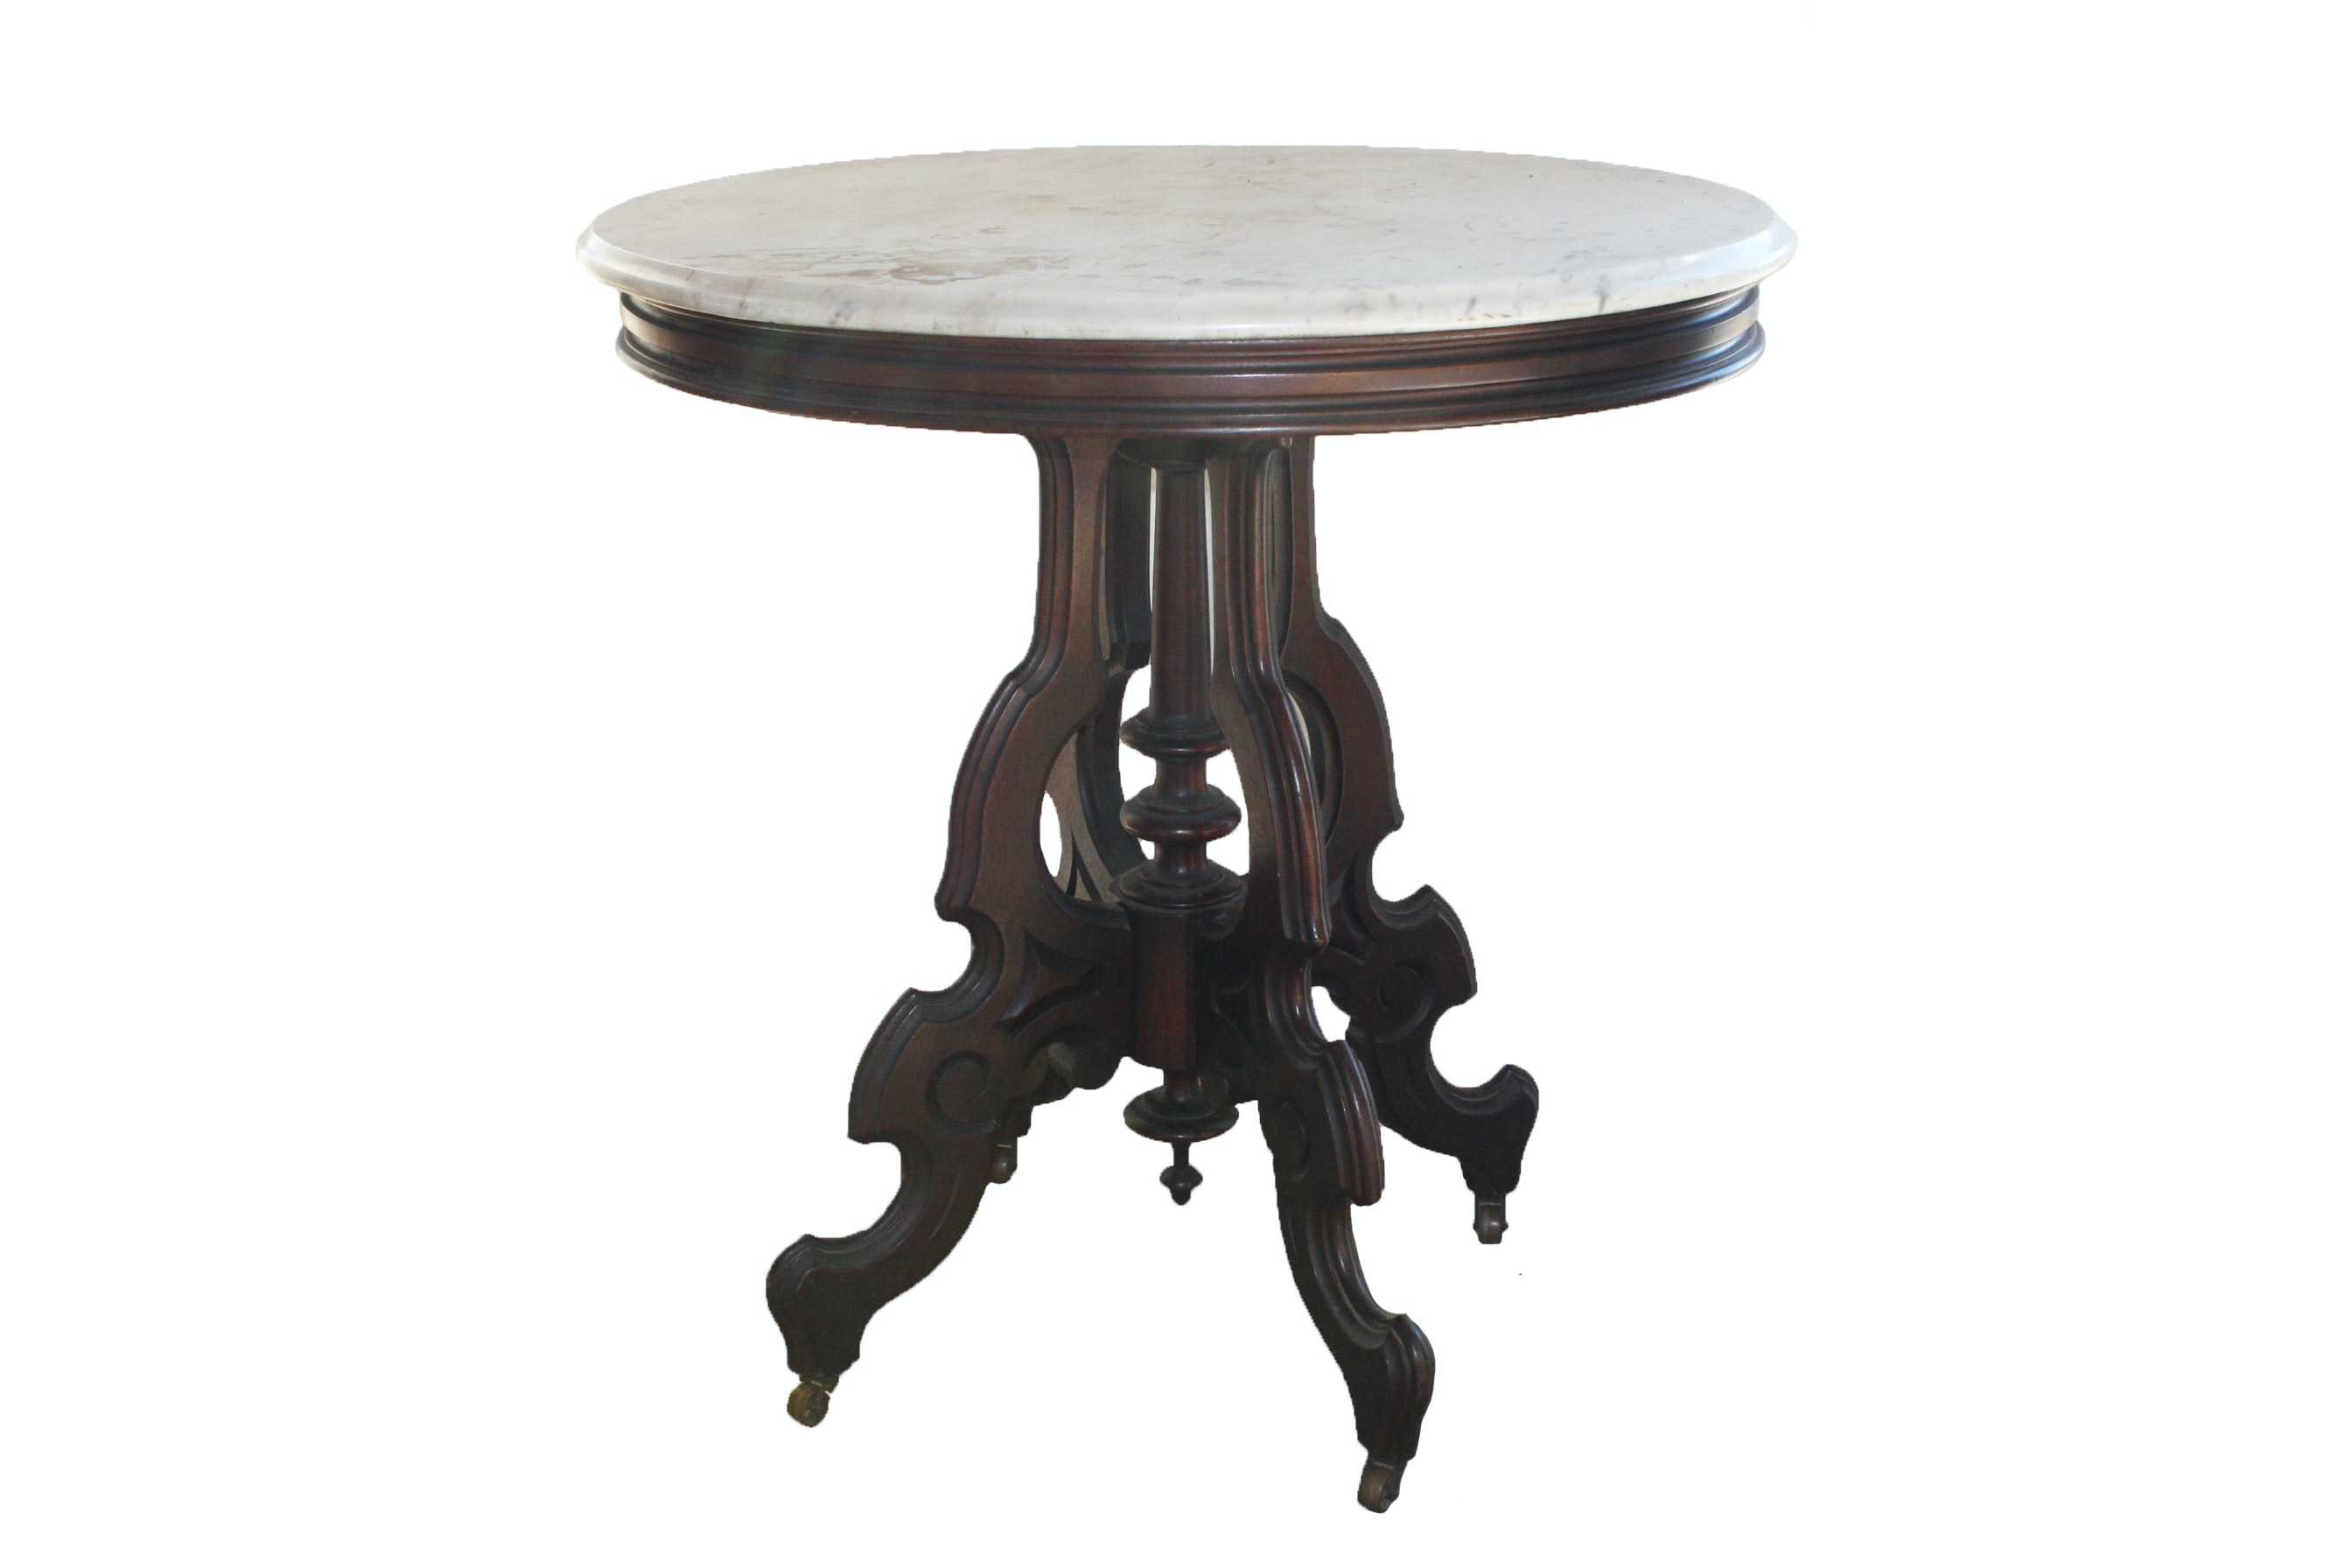 Round Victorian Marble Top Table